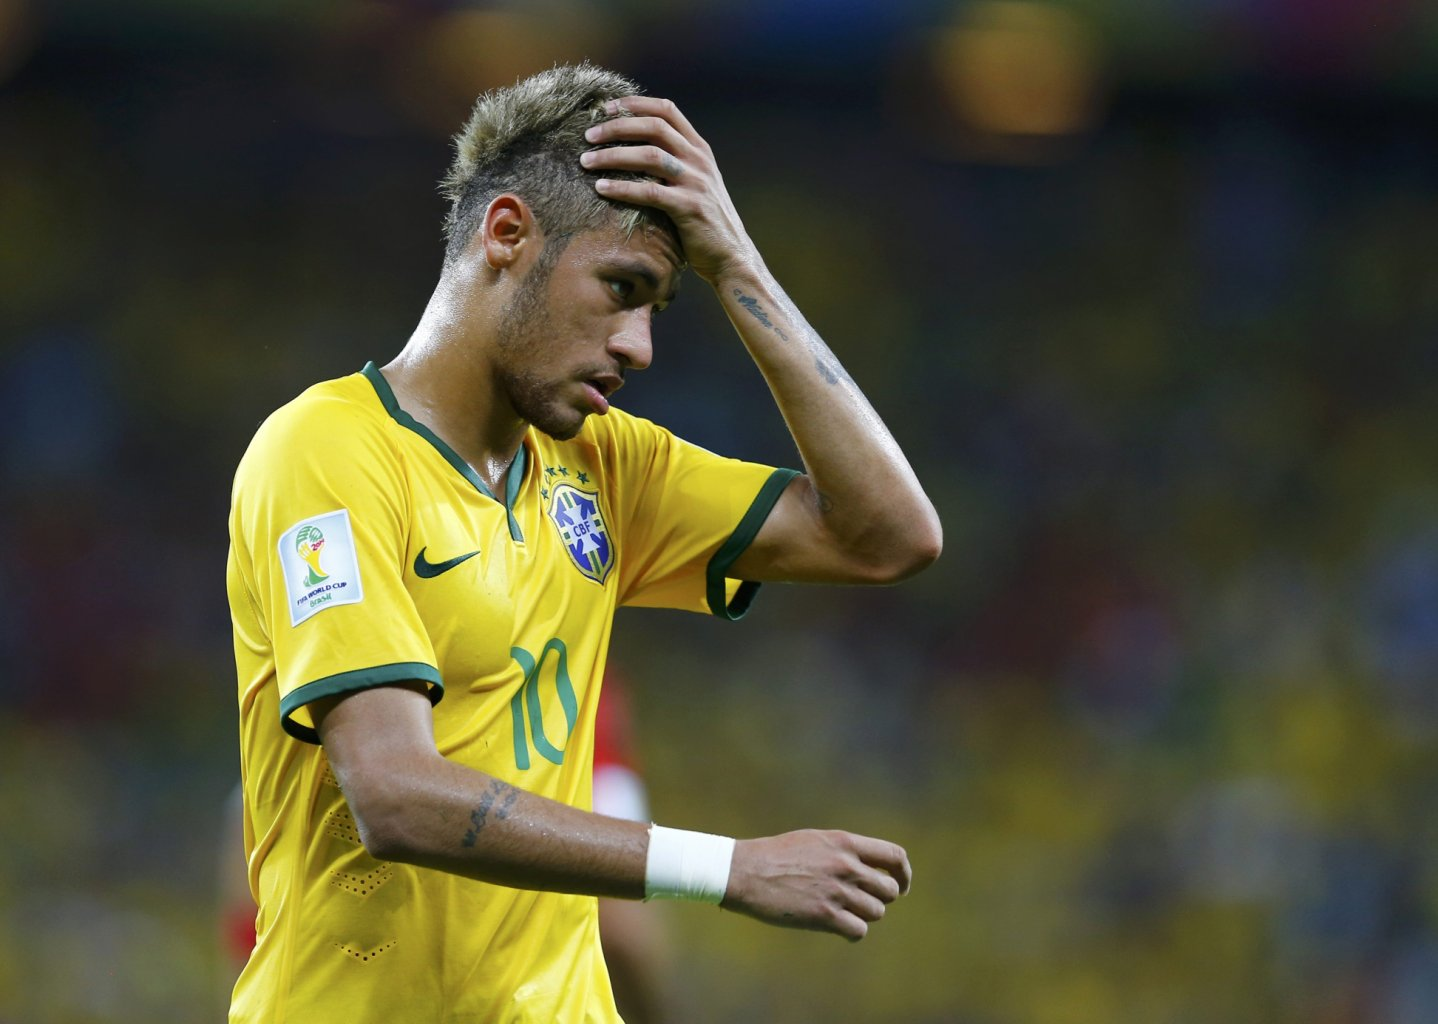 Neymar combing his new hair at the FIFA World Cup 2014